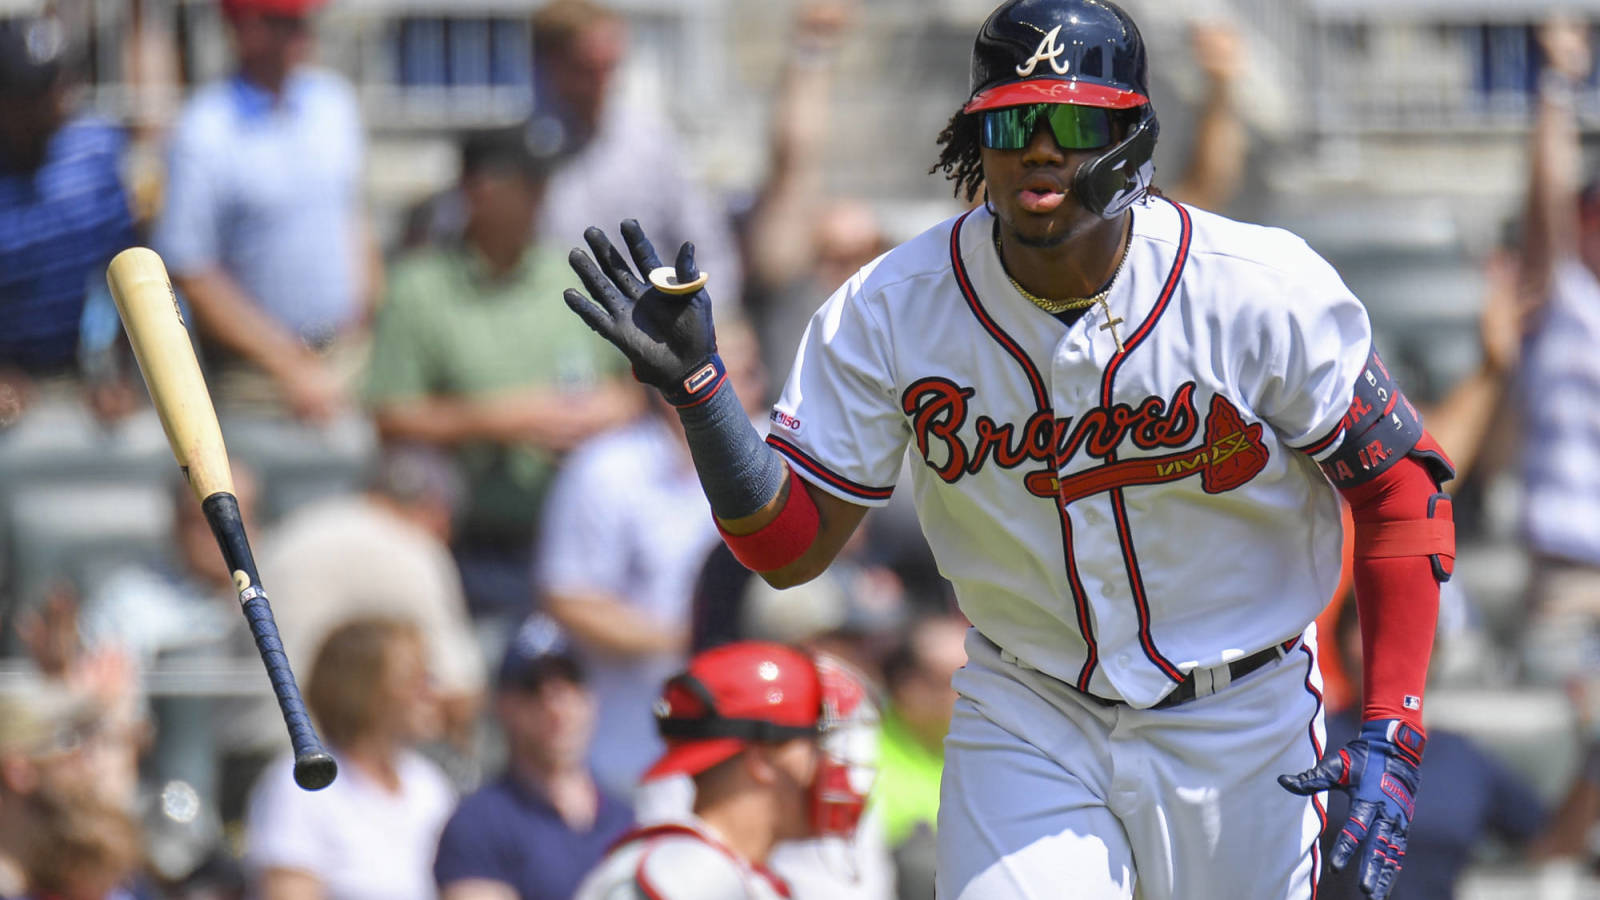 The Braves To Hit 40 Hrs In A Season Quiz Yardbarker